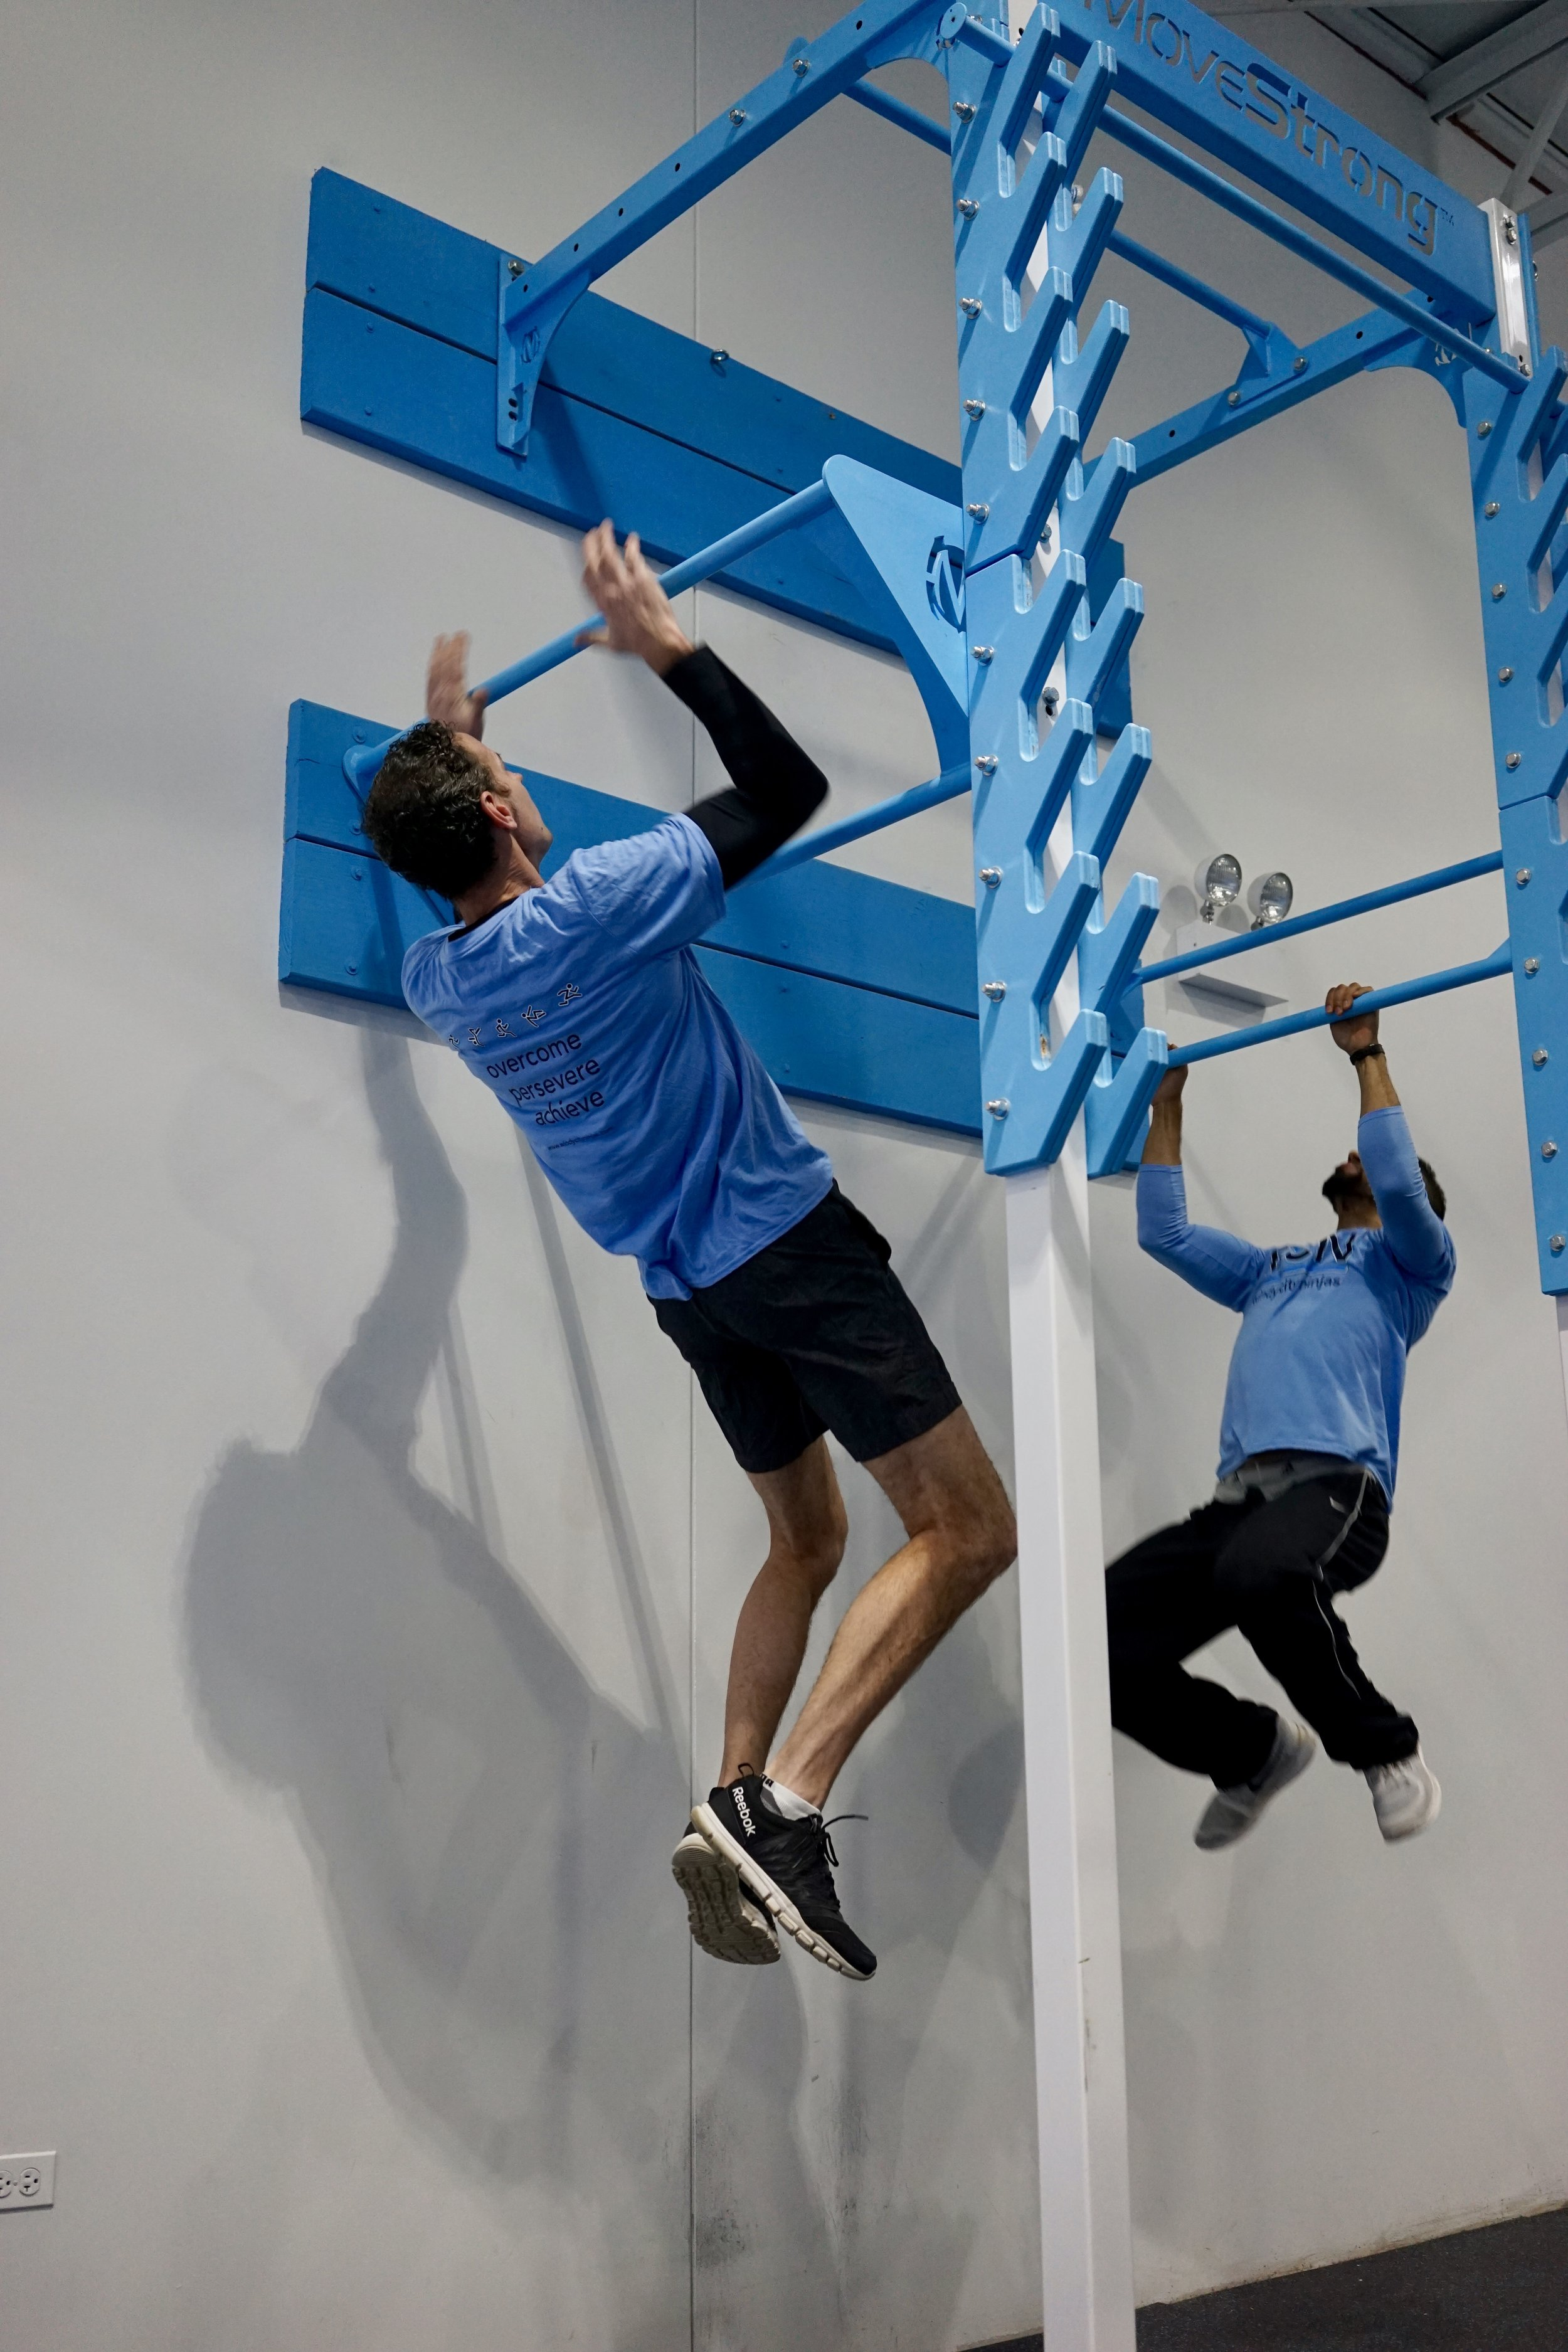 Dual height pull-up bars